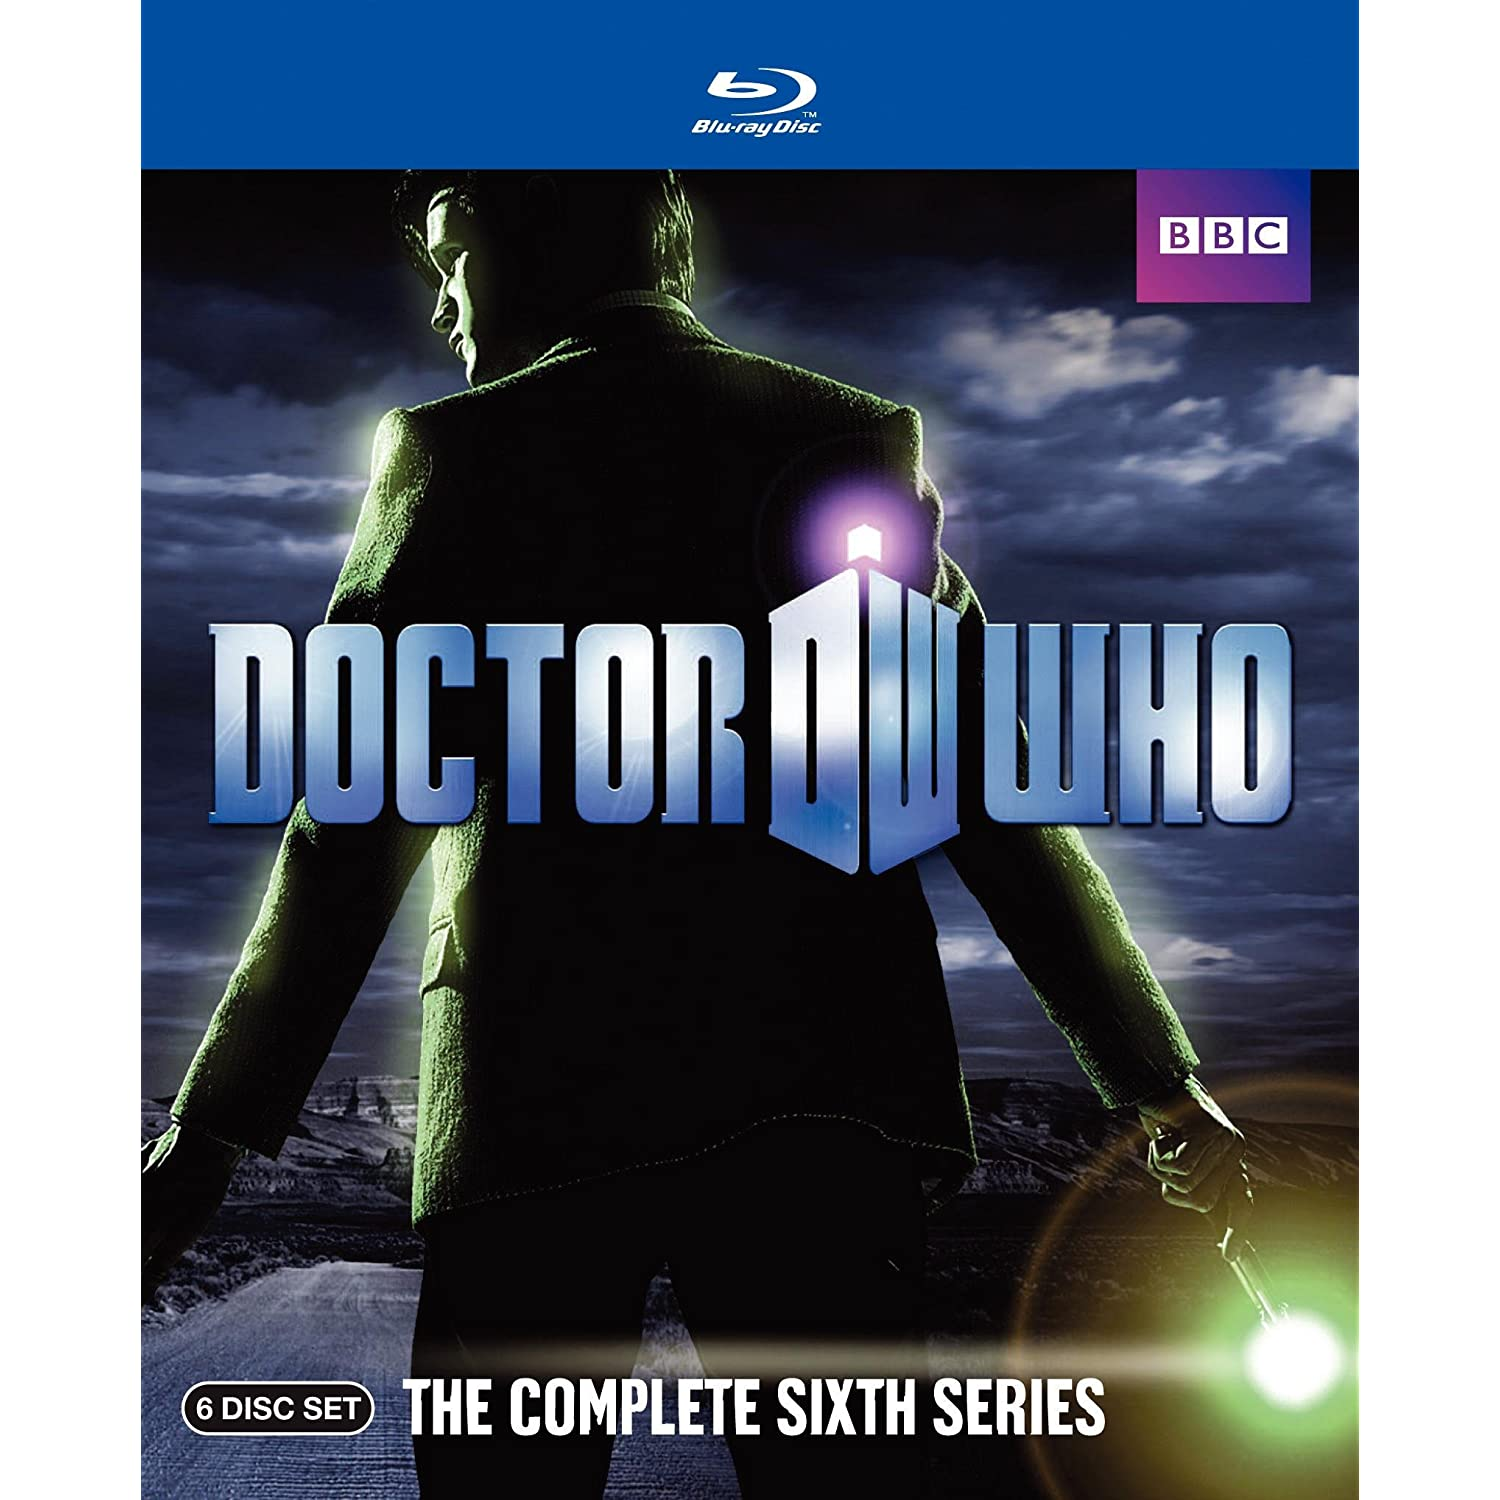 doctor who the complete sixth series blu-ray